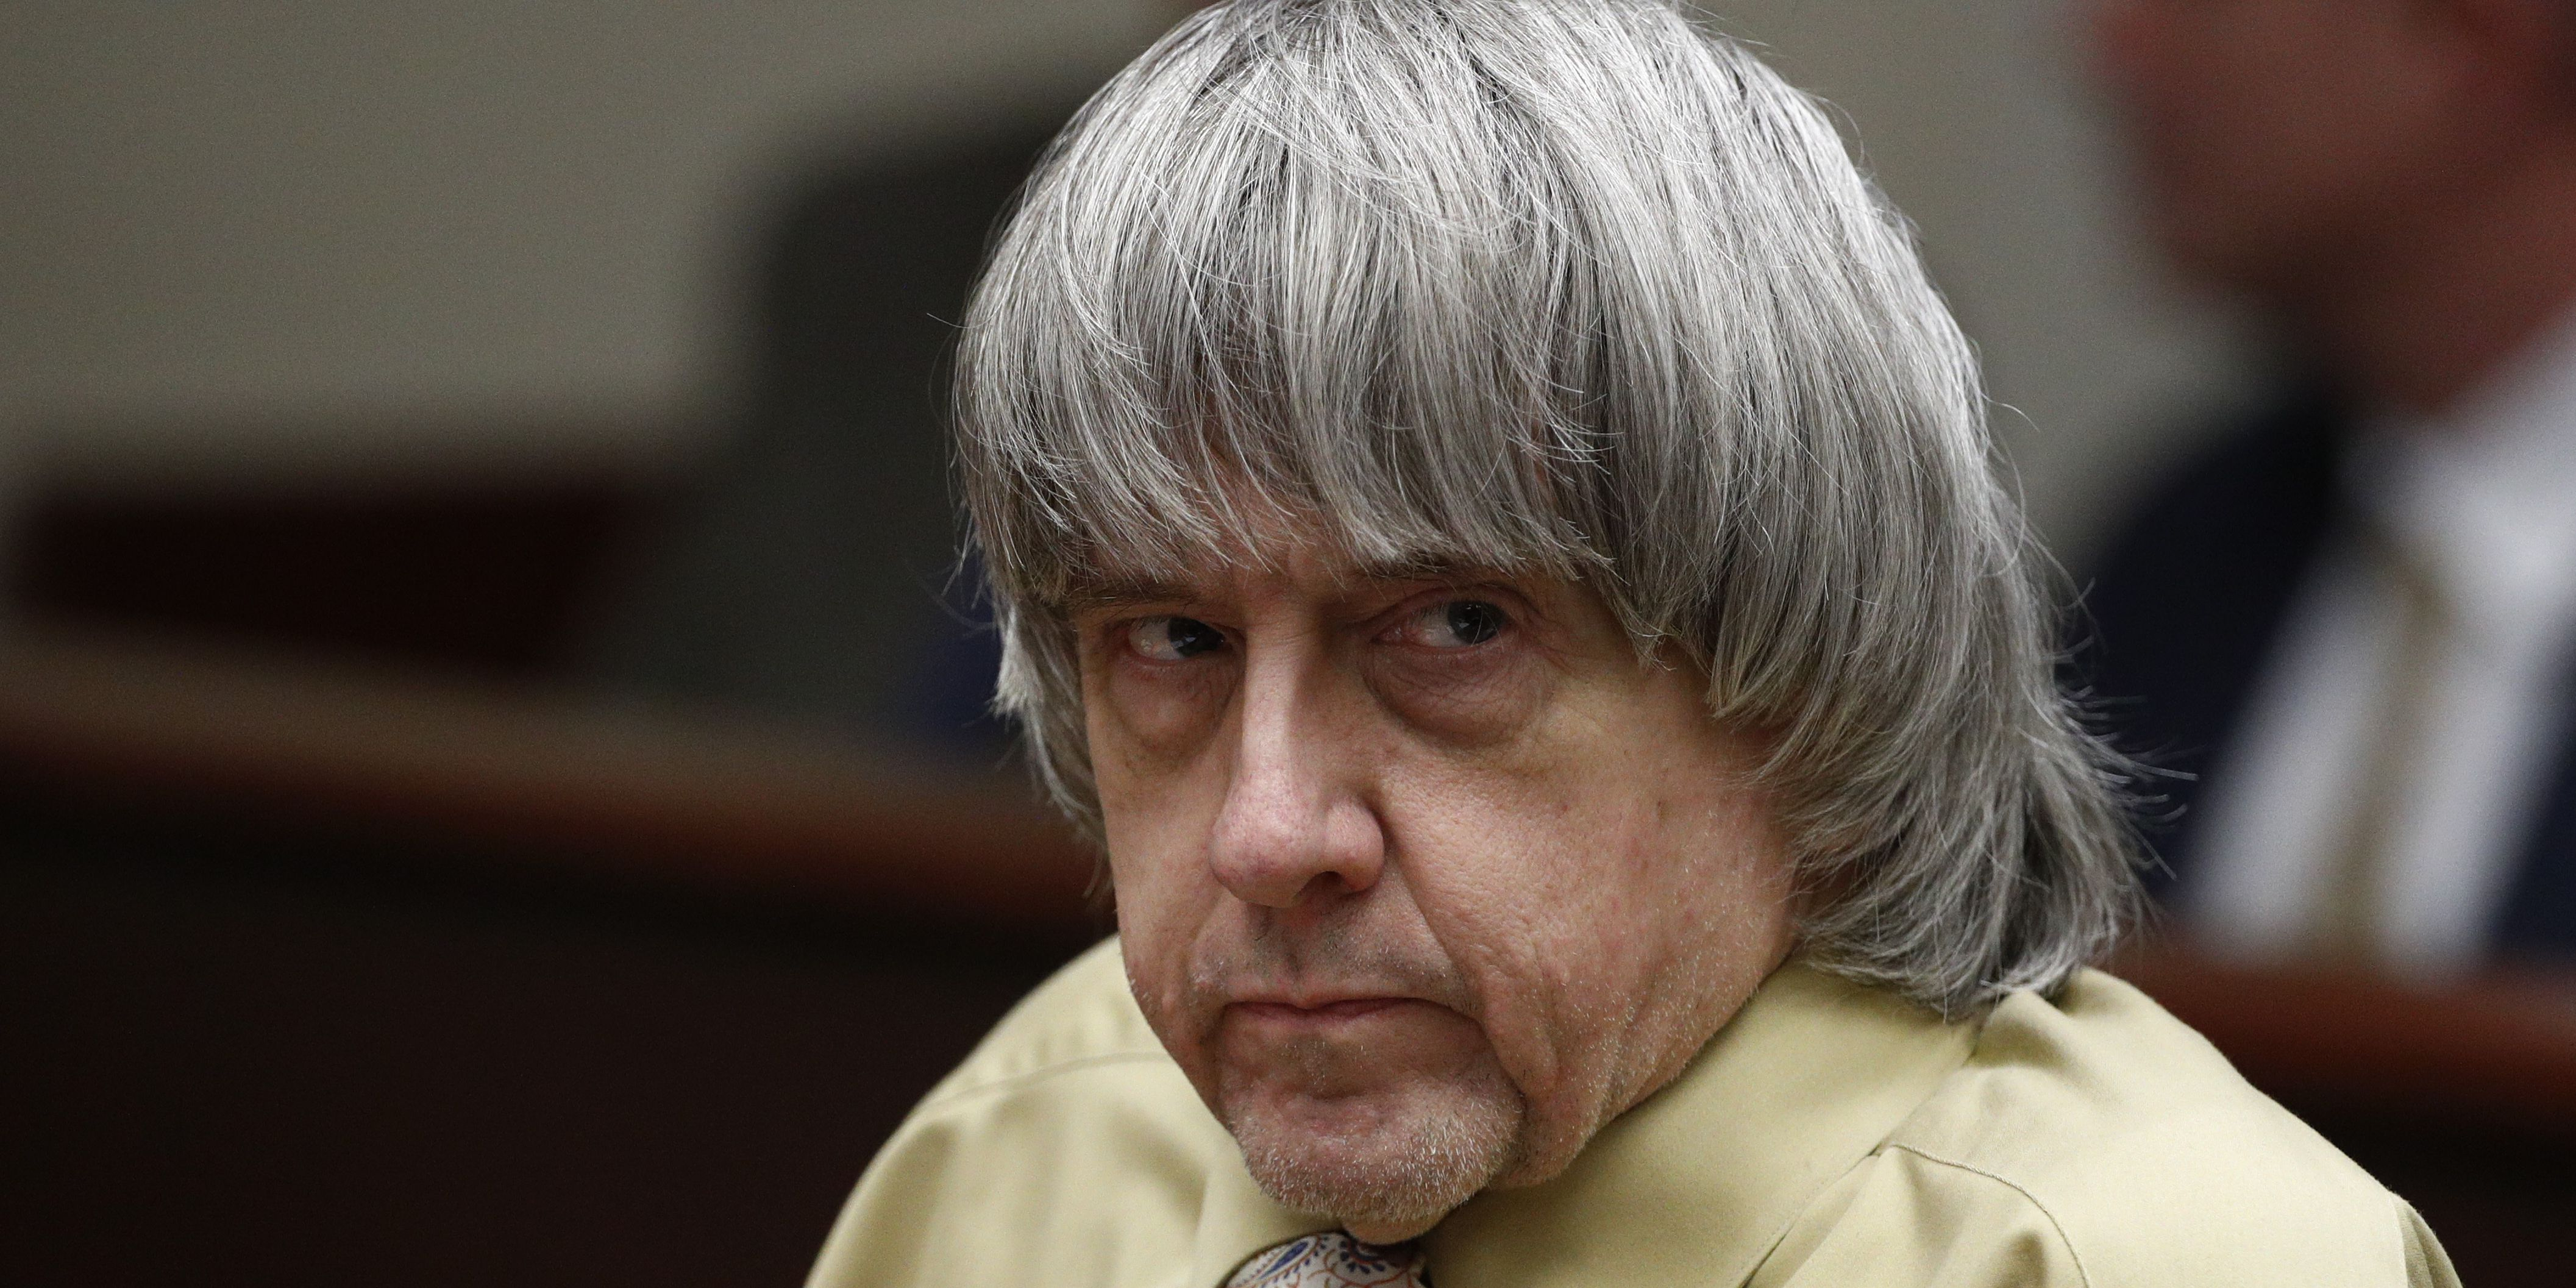 Couple admit torturing 13 children with guilty plea in Calif. case that alleged starvation, shackling